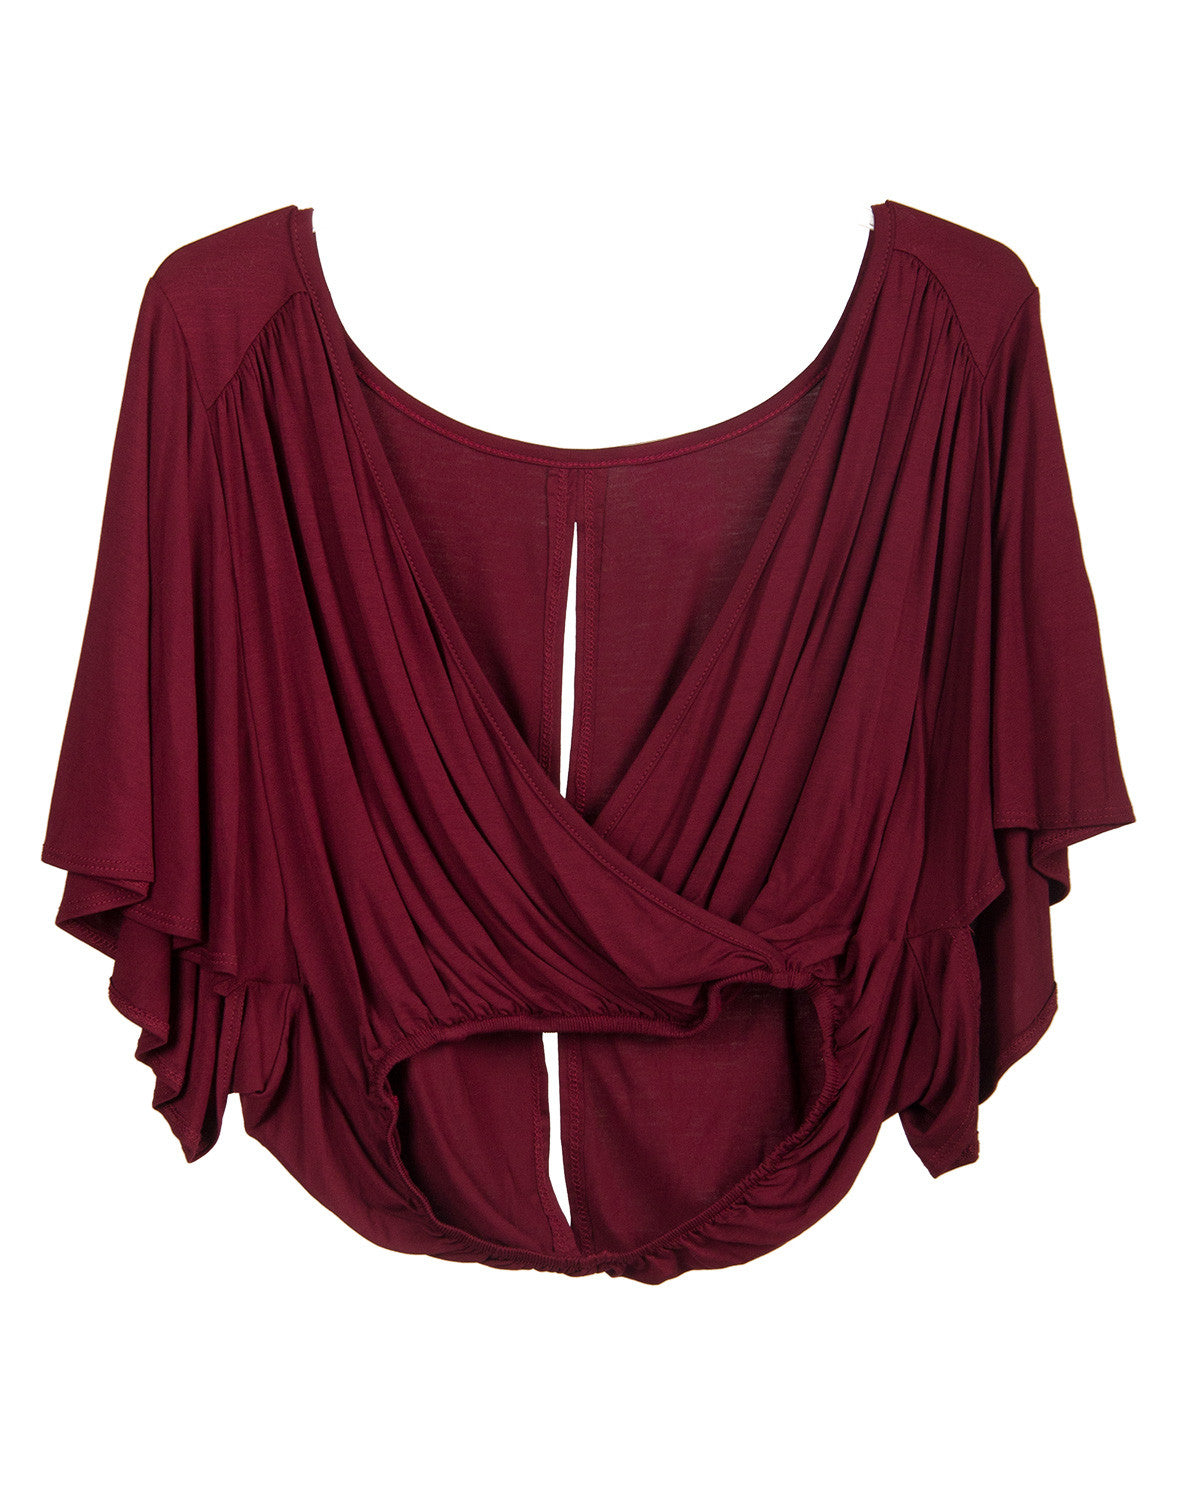 Deep Wrap V-Neck Top - Burgundy - Large